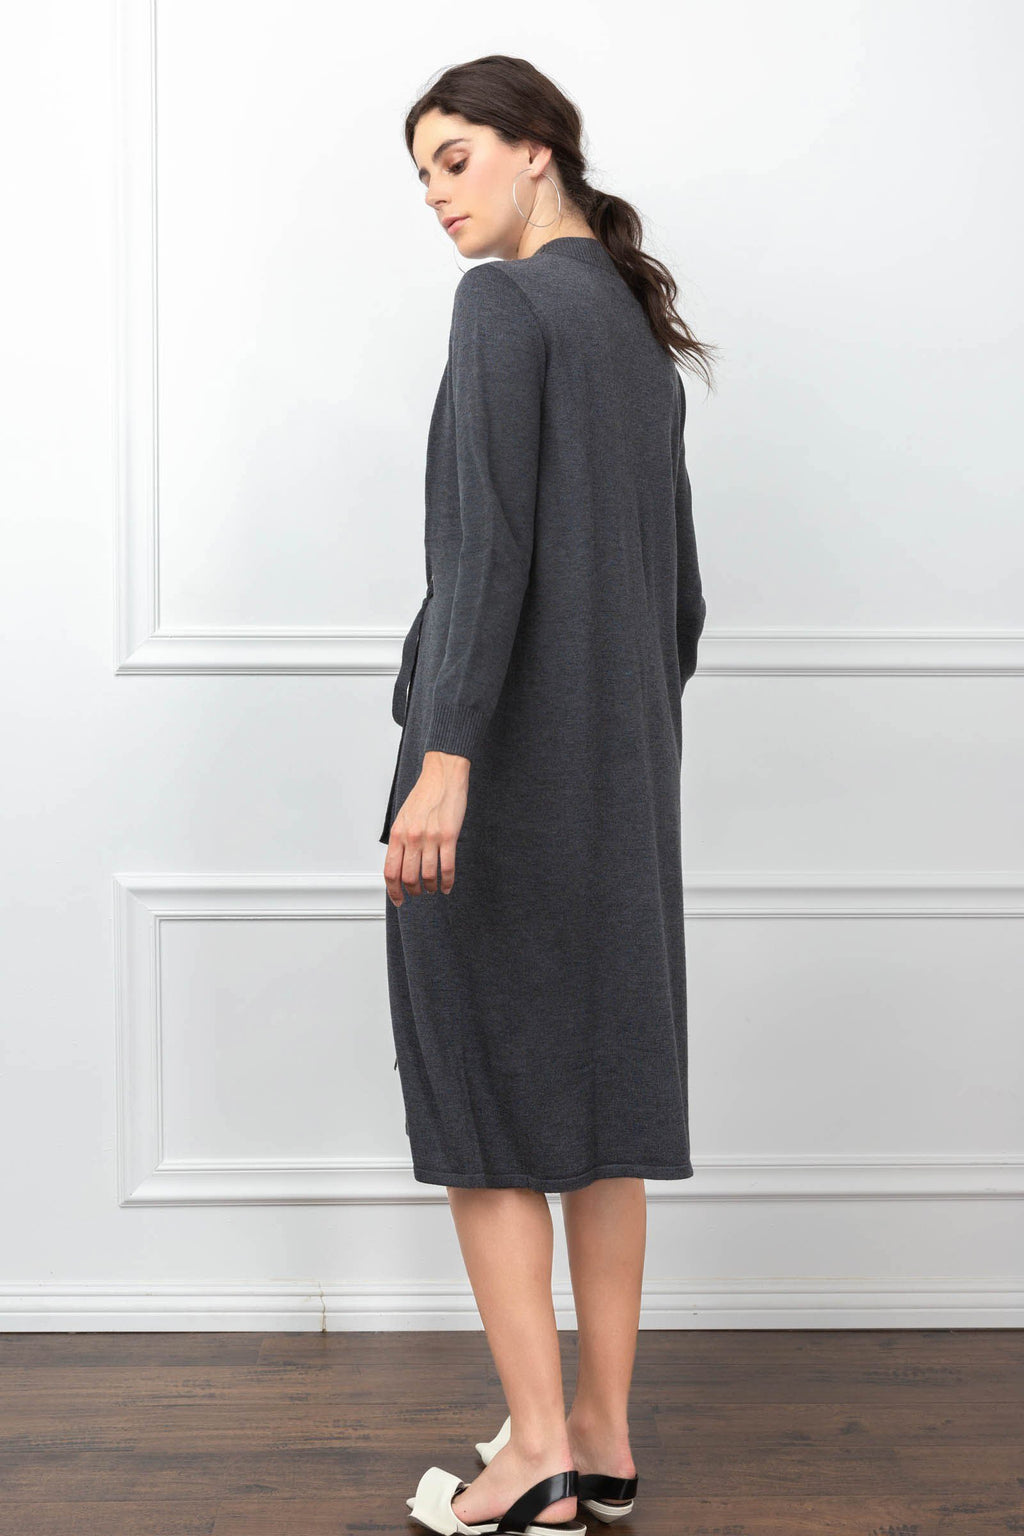 Savanna Knit Dress in Knitwear by J.ING - an L.A based women's fashion line